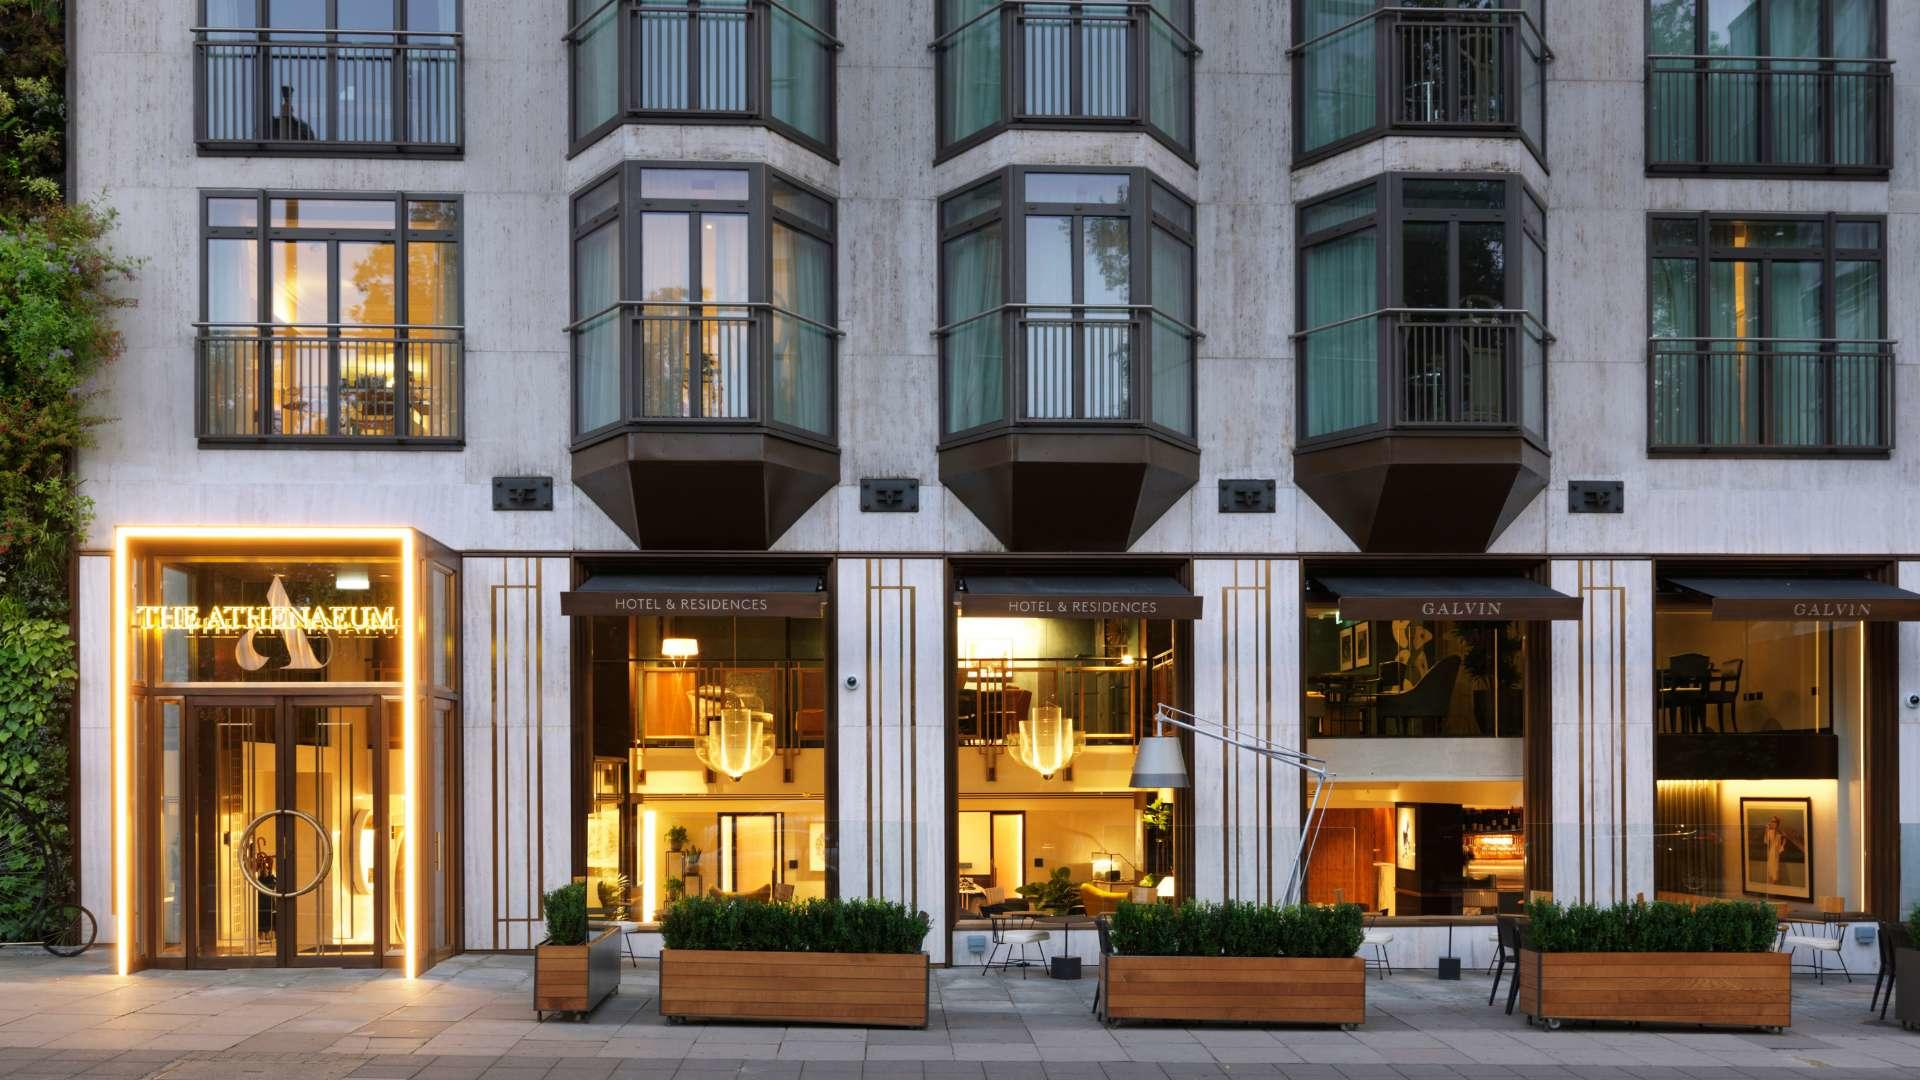 #ChicEats | Galvin At The Athenaeum, London